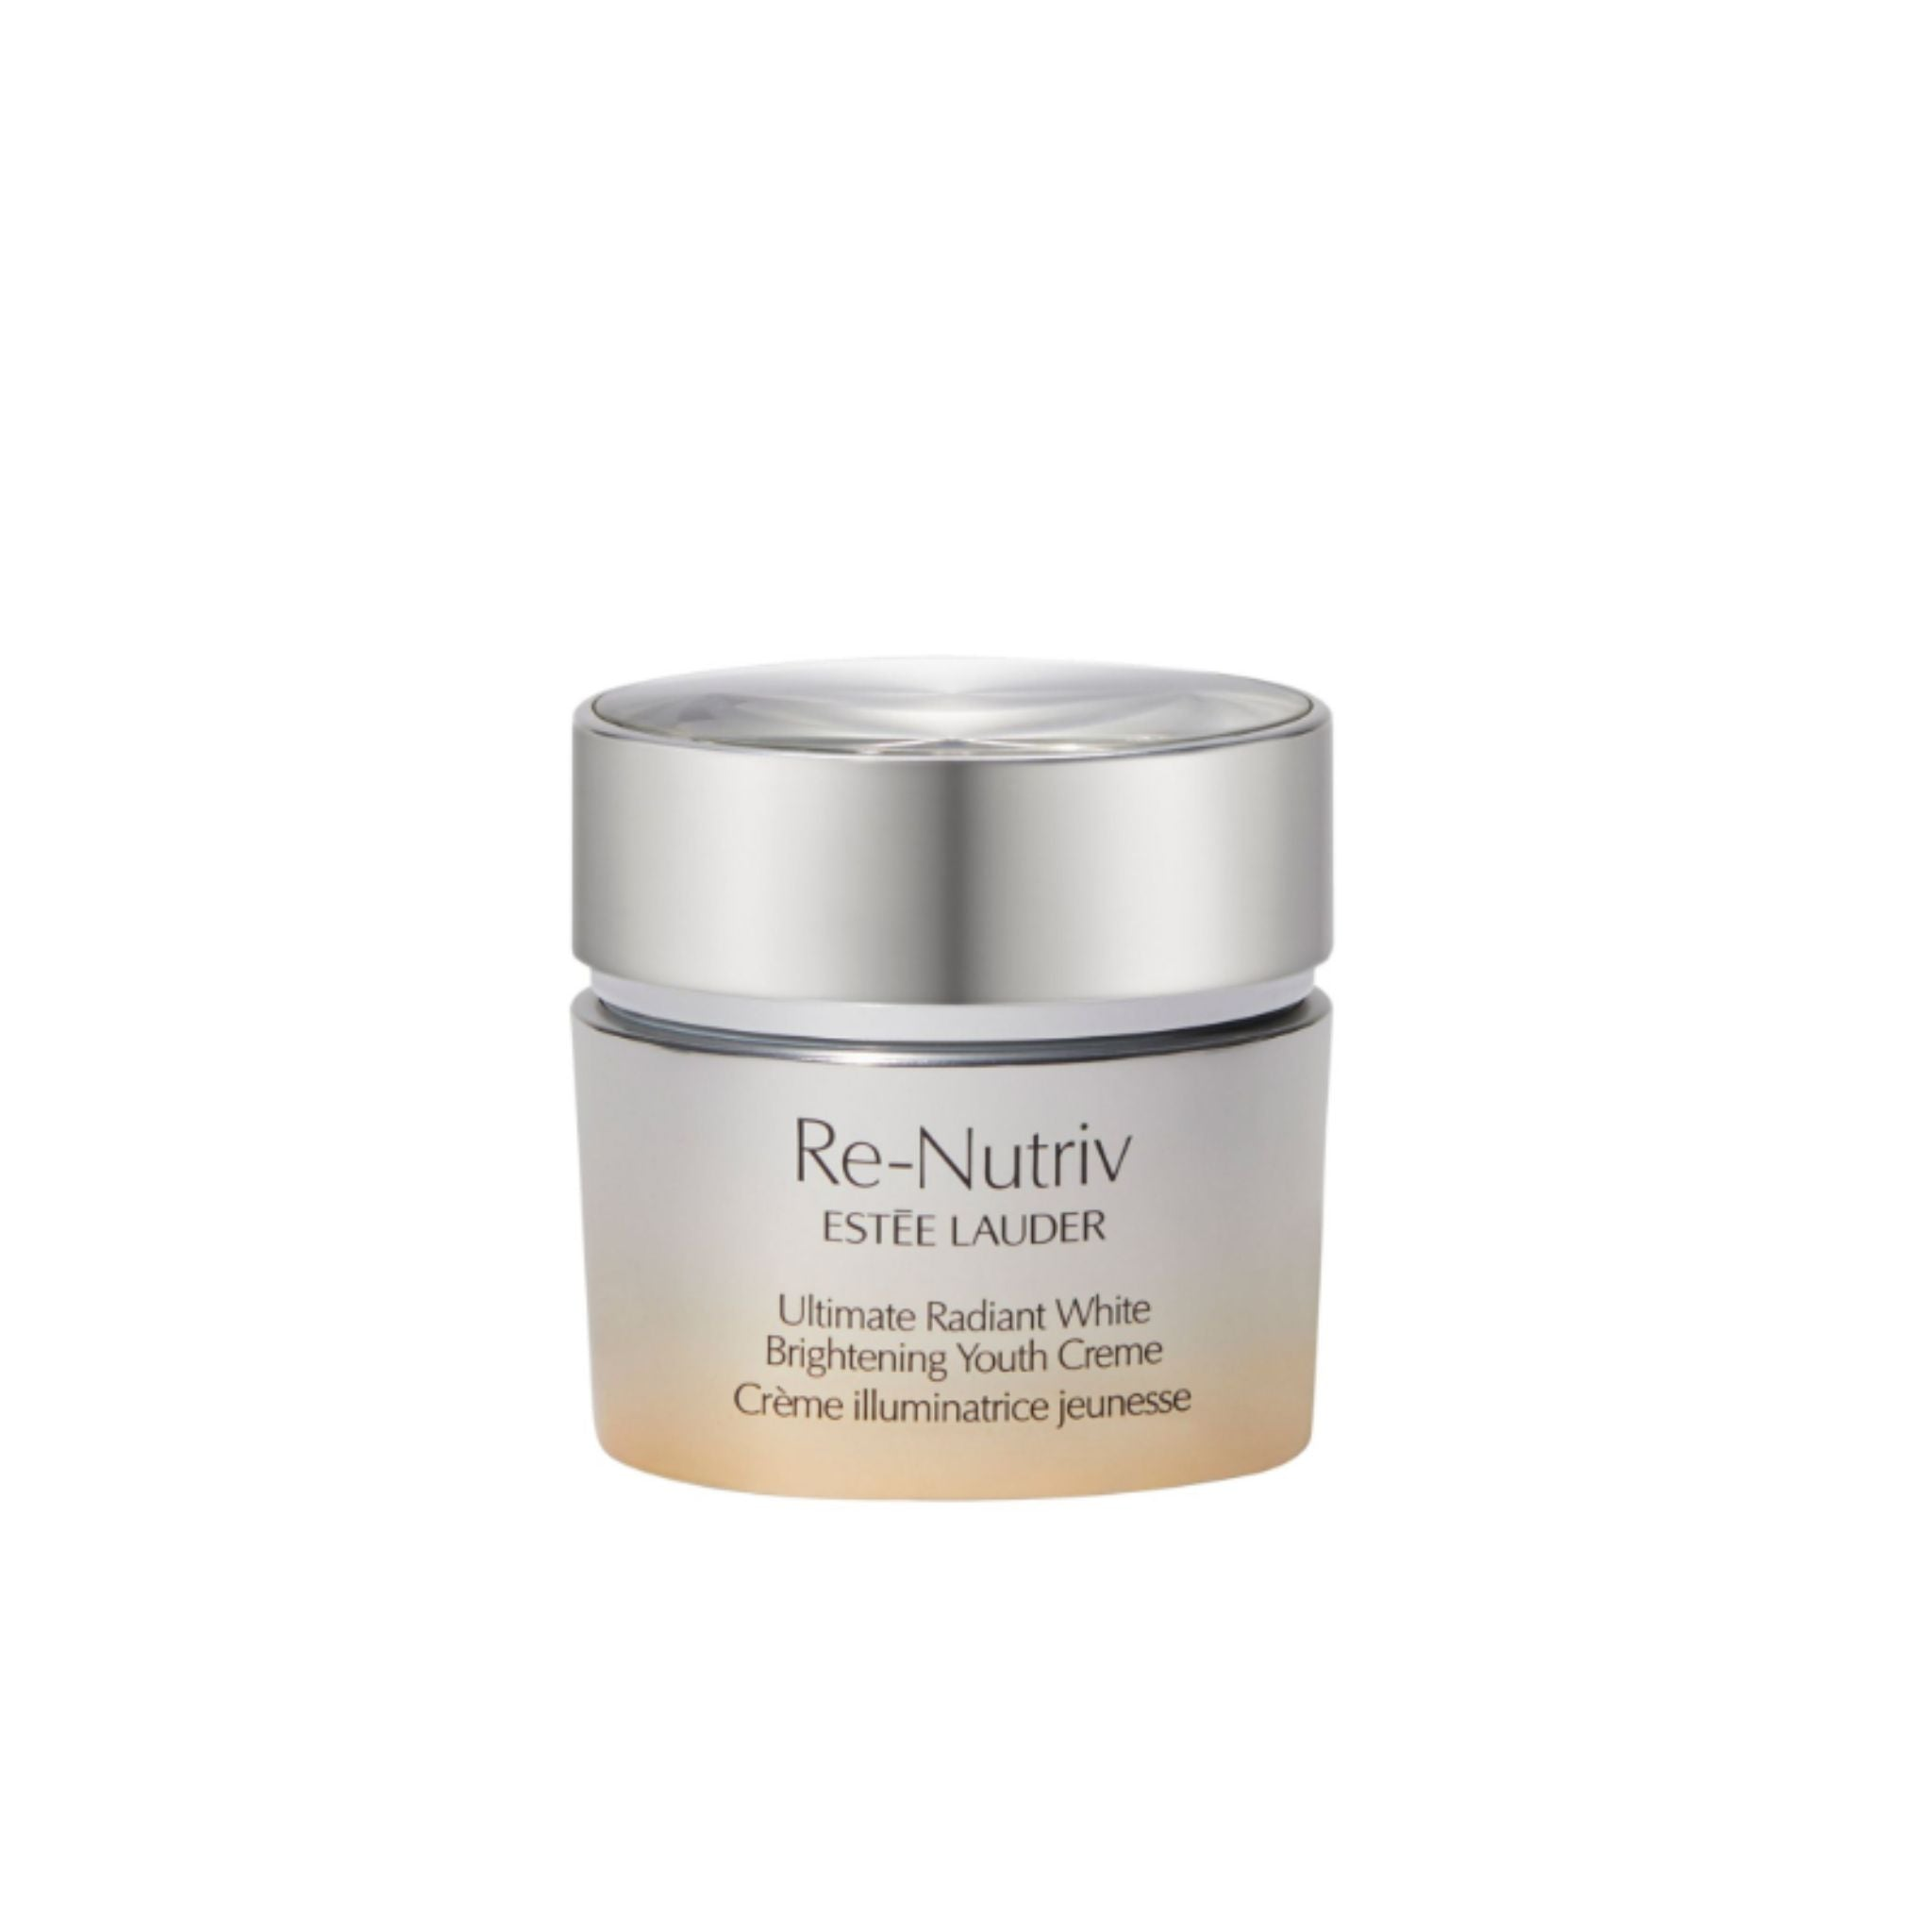 Estée Lauder Re-Nutriv Ultimate Radiant White Brightening Youth Créme 50ml